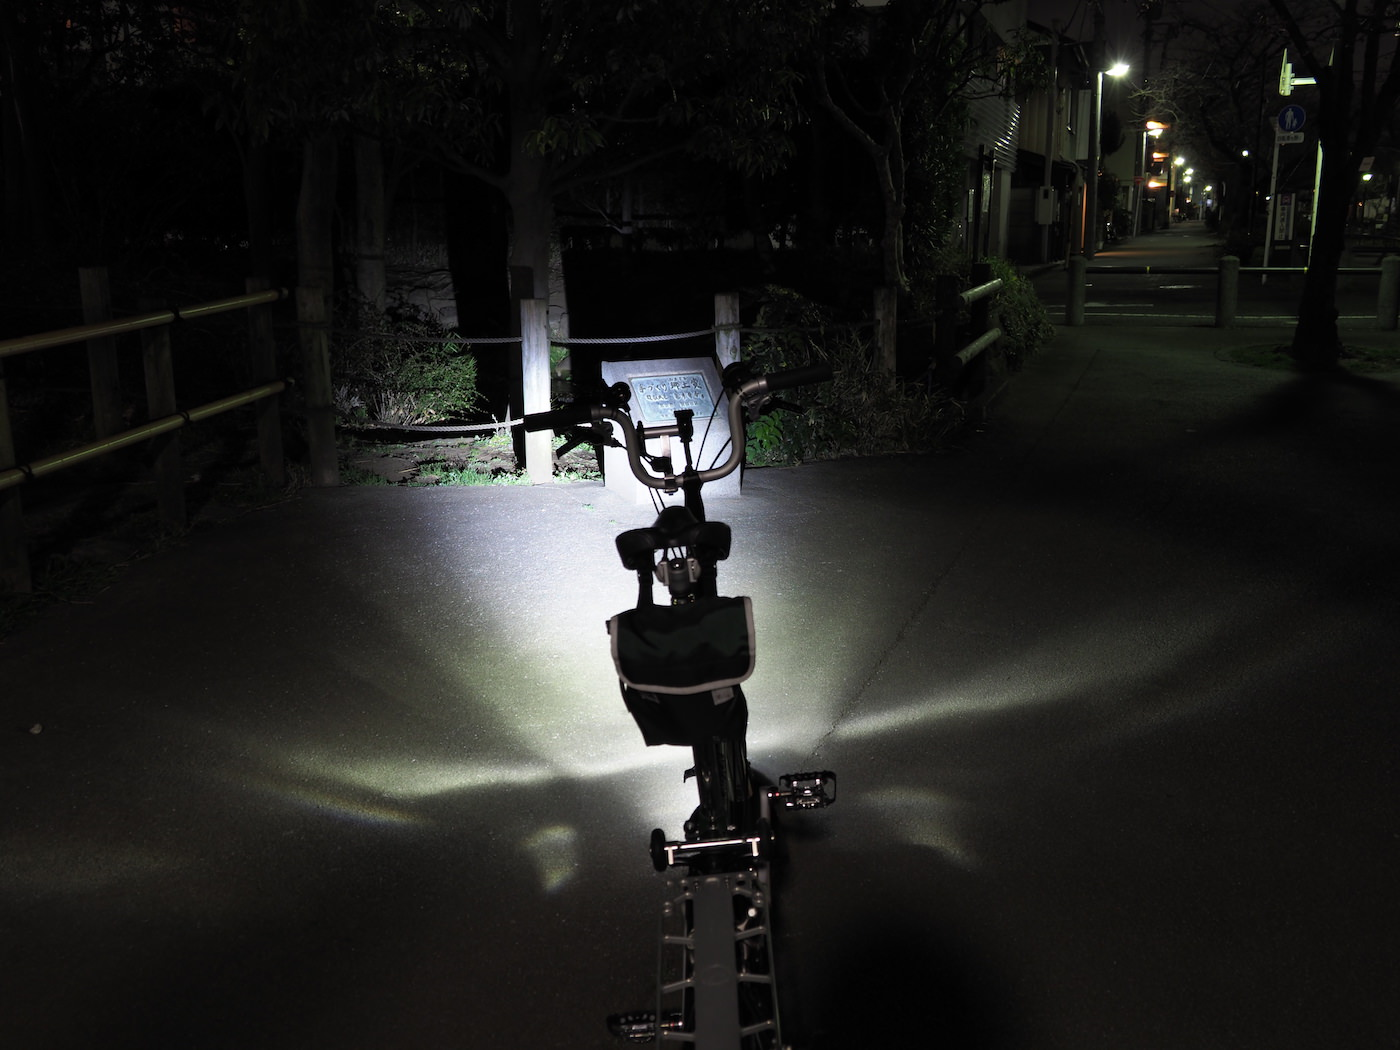 Cree xpg 2 cheap chinese led light with wide angle lens for bicycle 00039